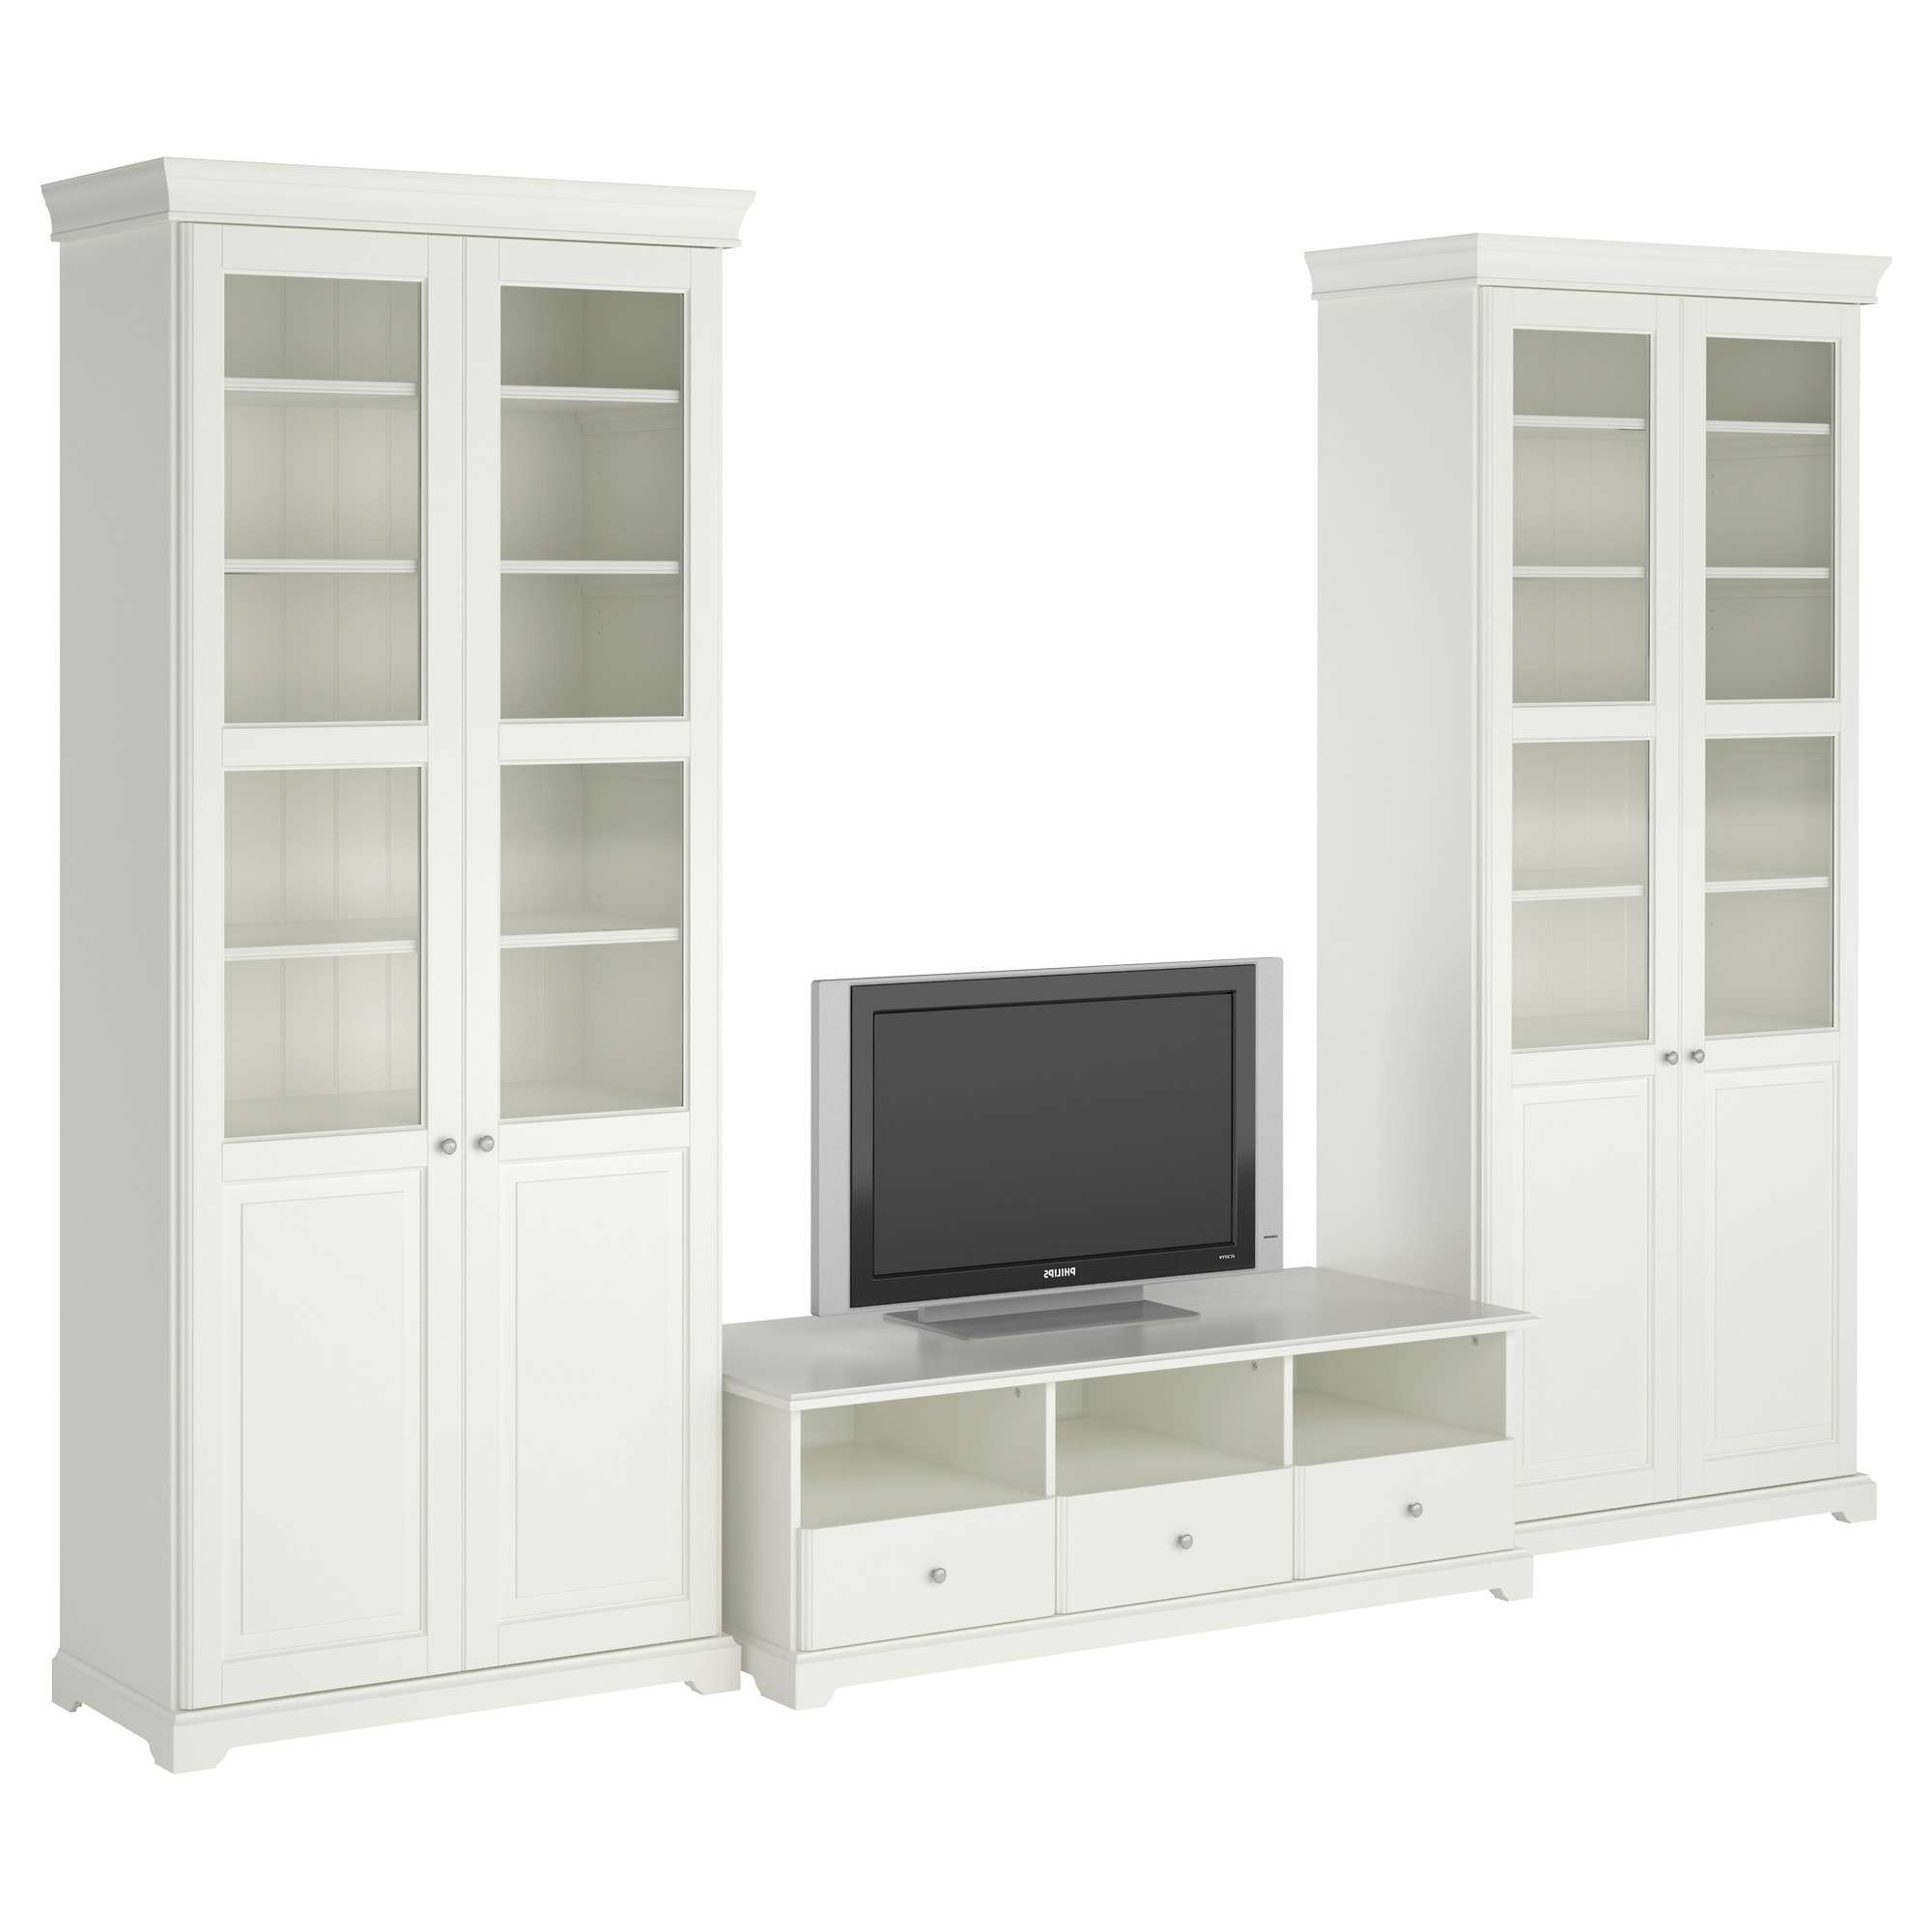 Besta Media Storage Tv Stands Entertainment Centers Ikea Liatorp Inside White Wooden Tv Stands (View 14 of 20)